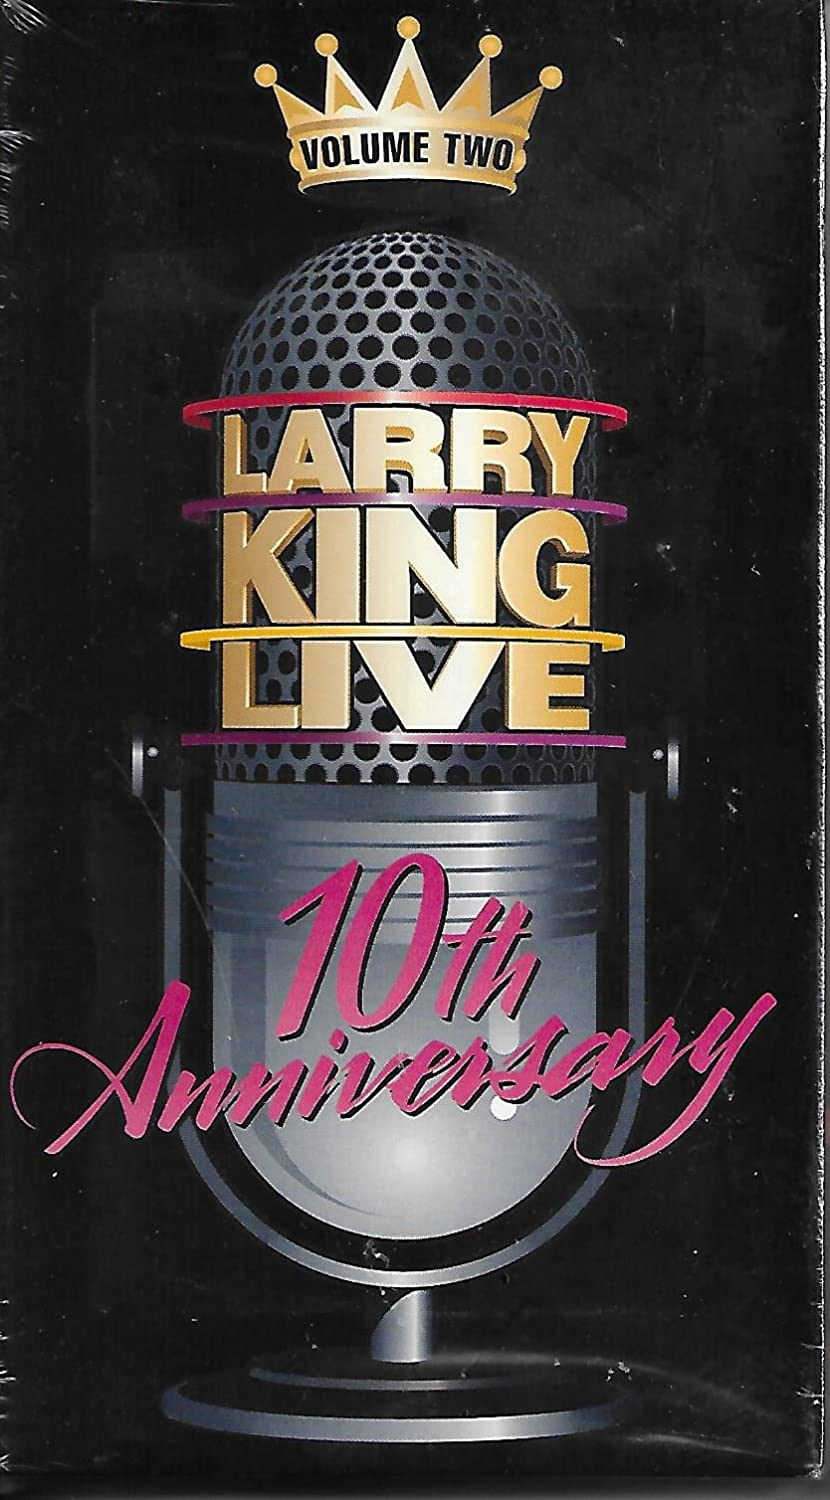 Amazon.com: Larry King Live - 10th Anniversary Vol. 2: Larry King: Movies & TV